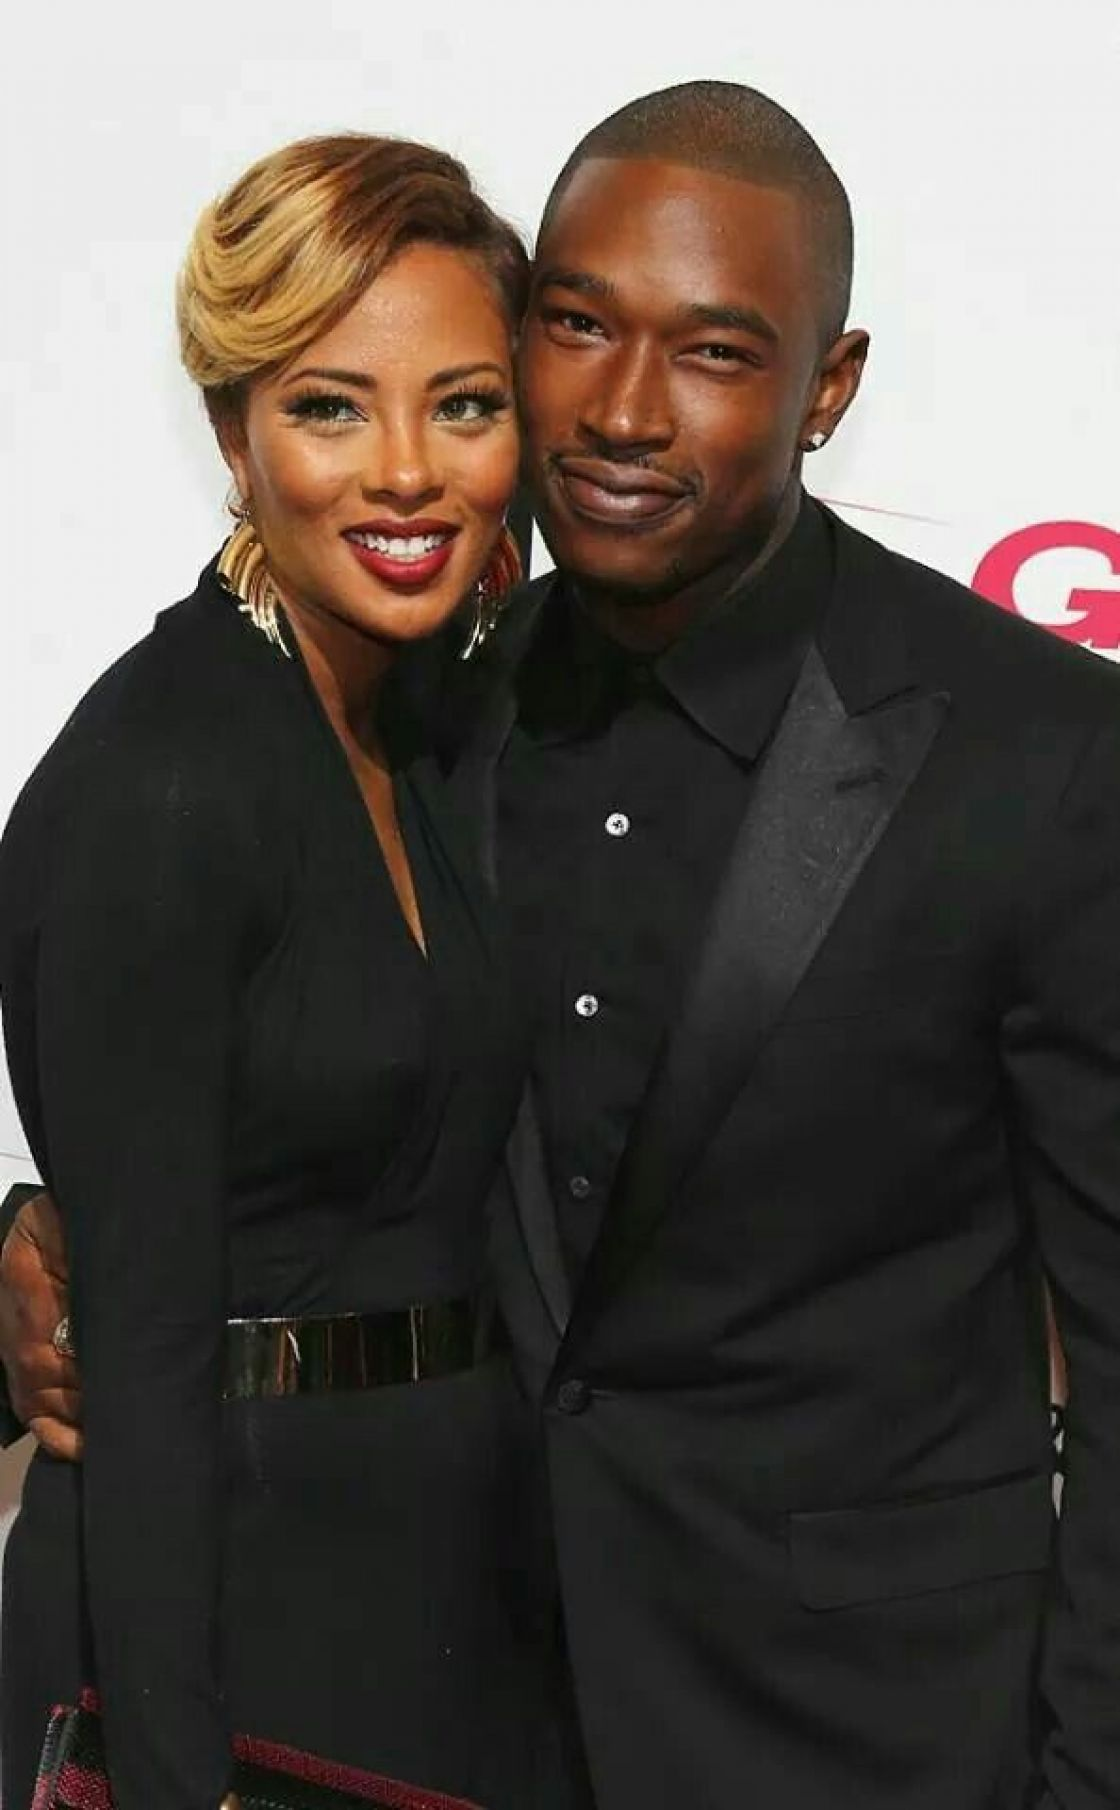 Eva Marcille talk about Violent Relationship with Kevin McCall: 'She was pregnant'